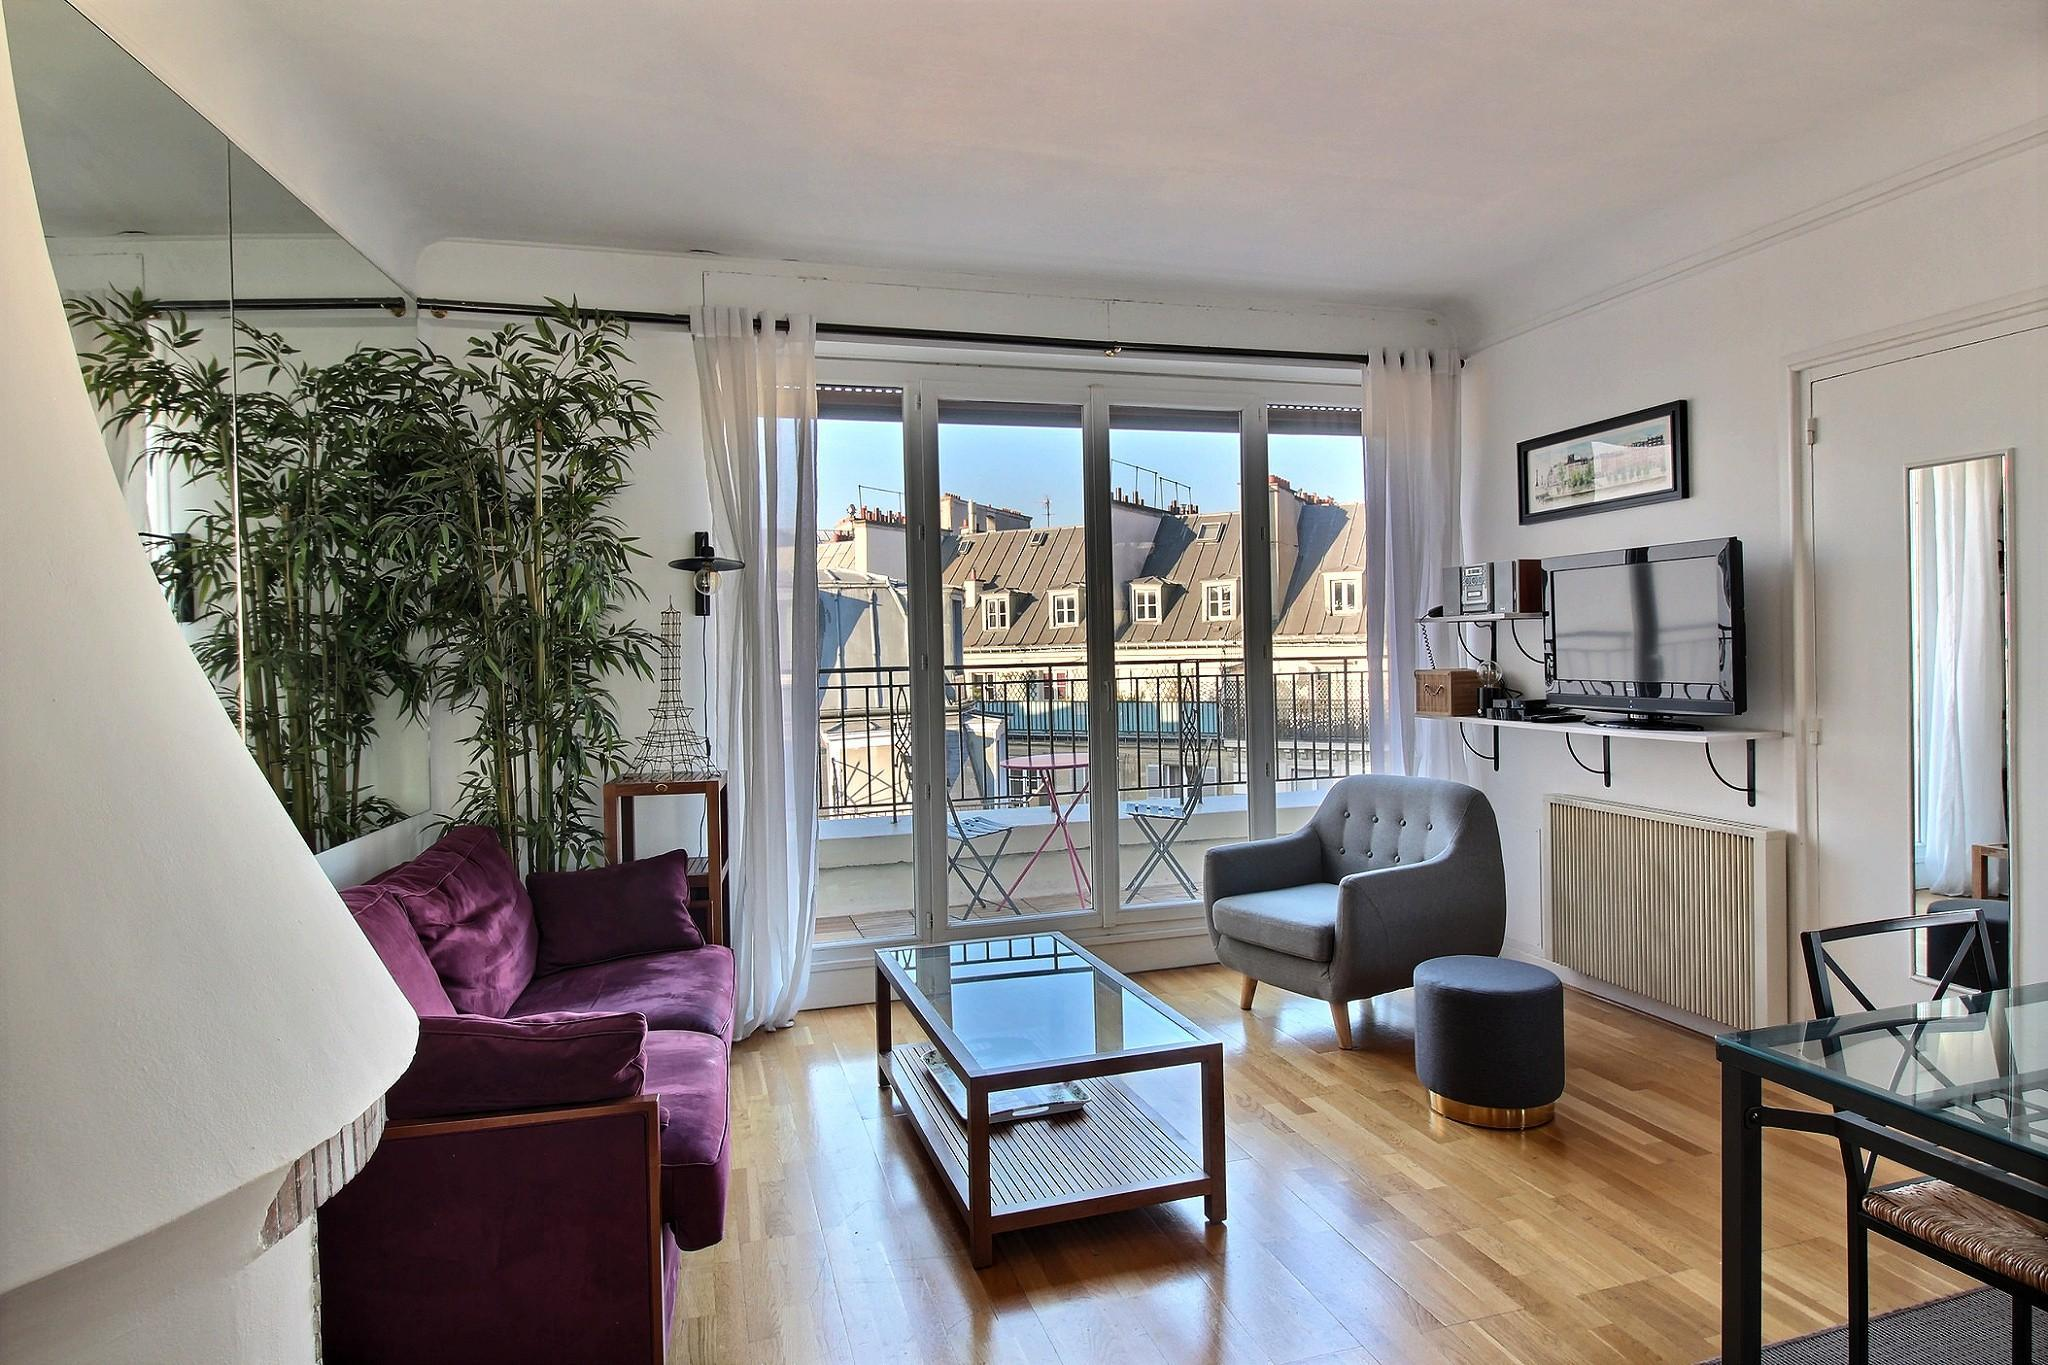 102111 - Large apartment for 4 people near the Opéra